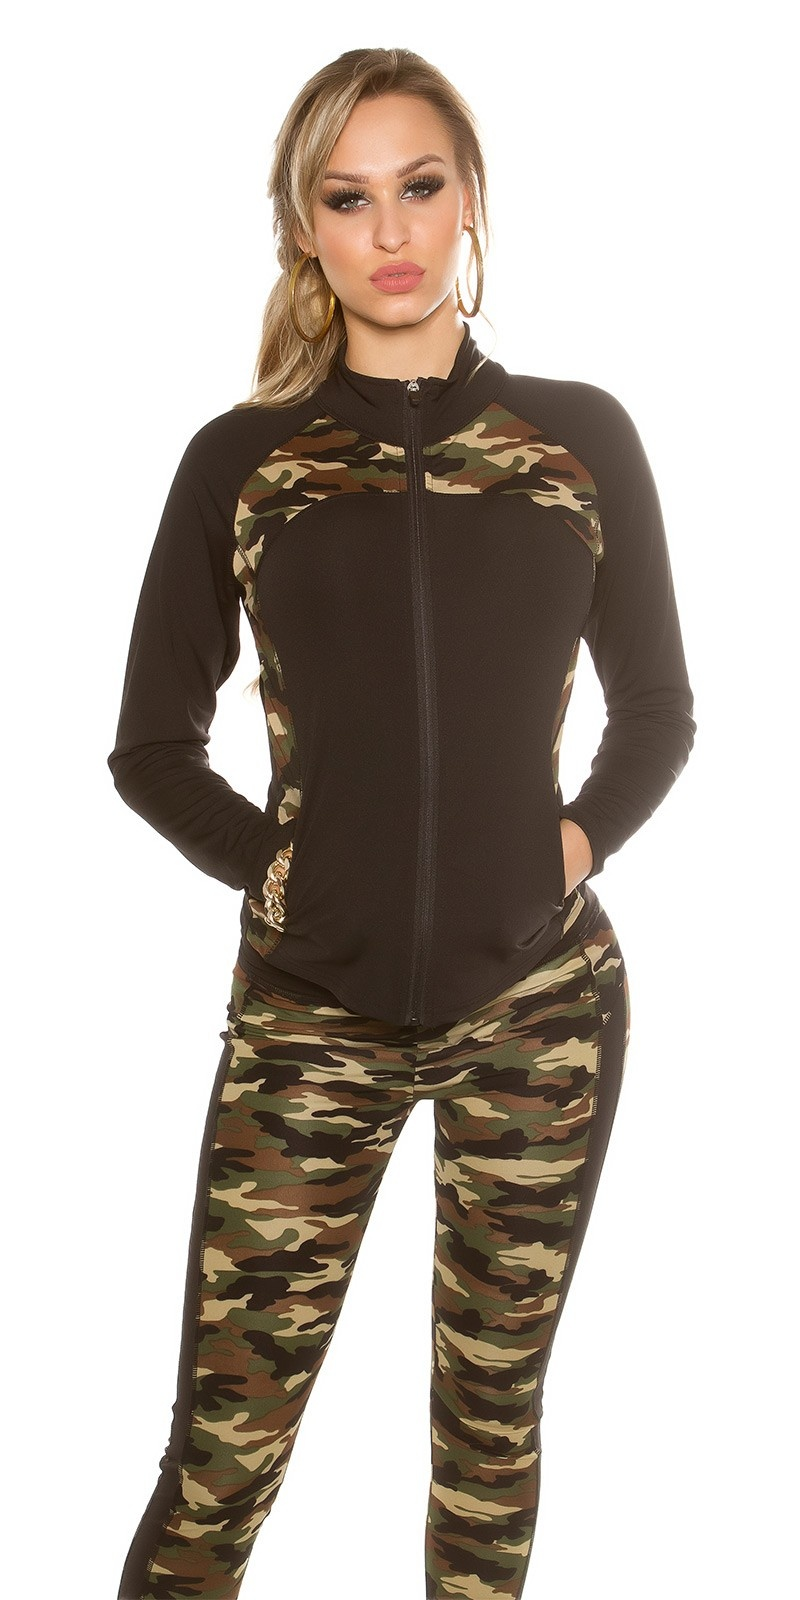 Trendy Workout Jacket with Camouflage Print Black